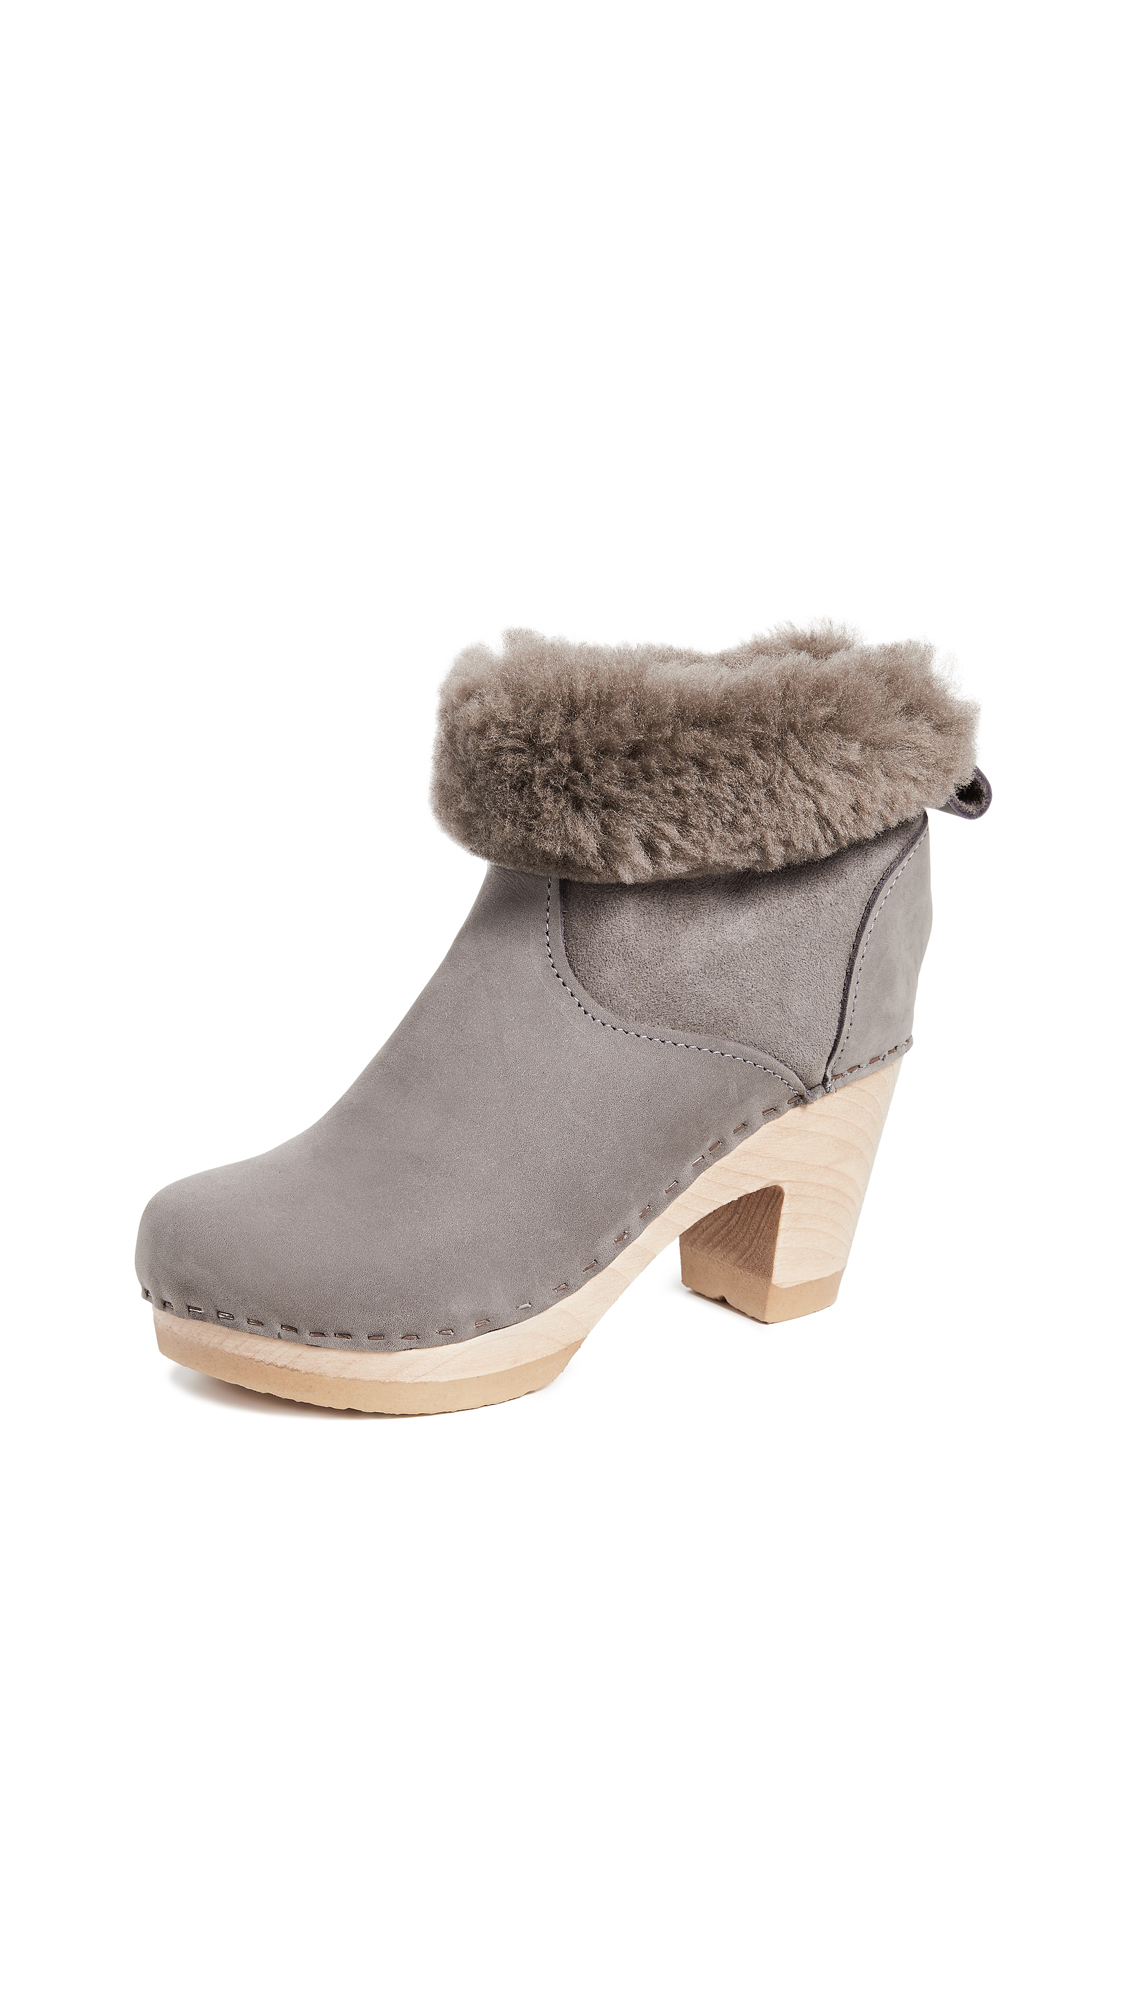 No.6 Pull On Shearling High Boots - Smoke